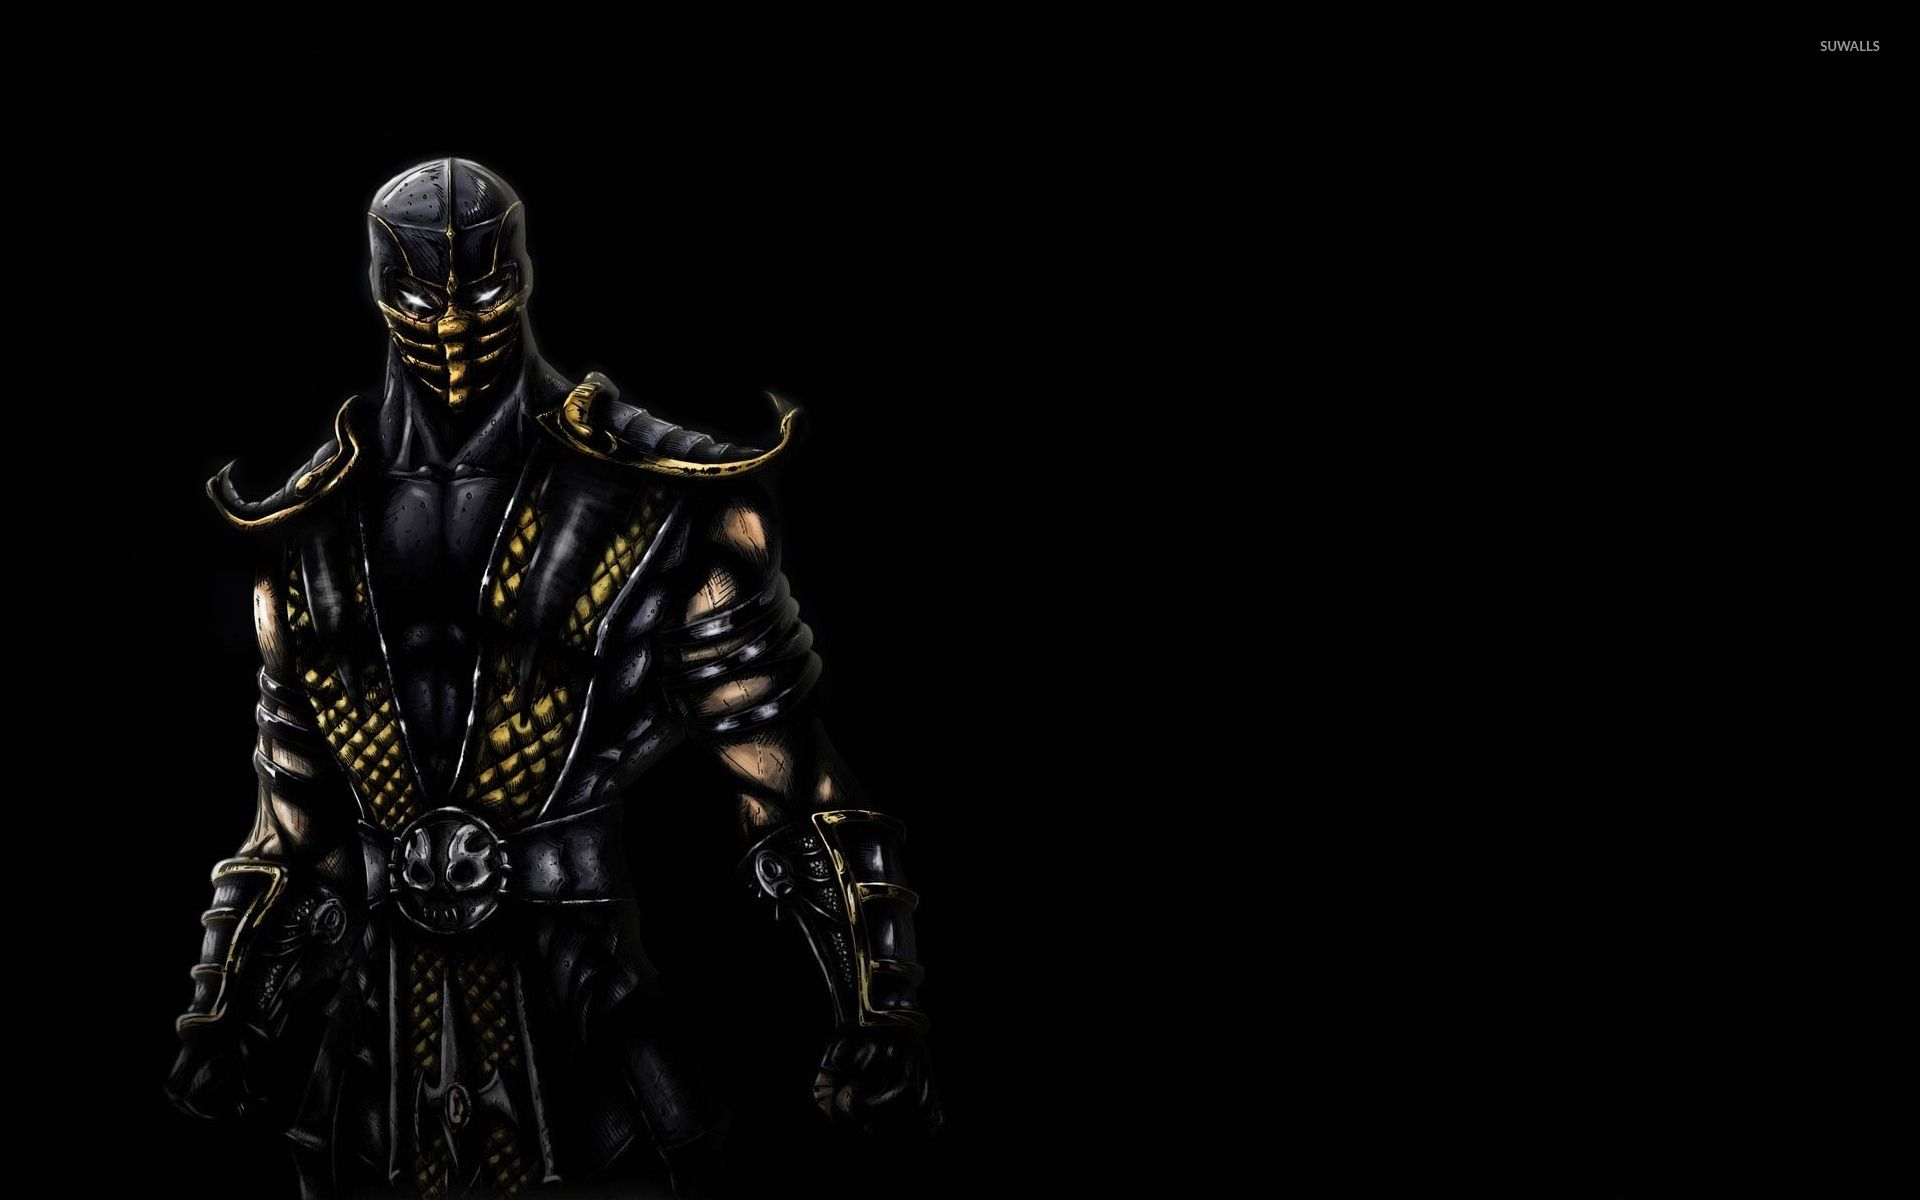 Scorpion Mortal Kombat X Get Over Here By Andrearoxa On Mortal